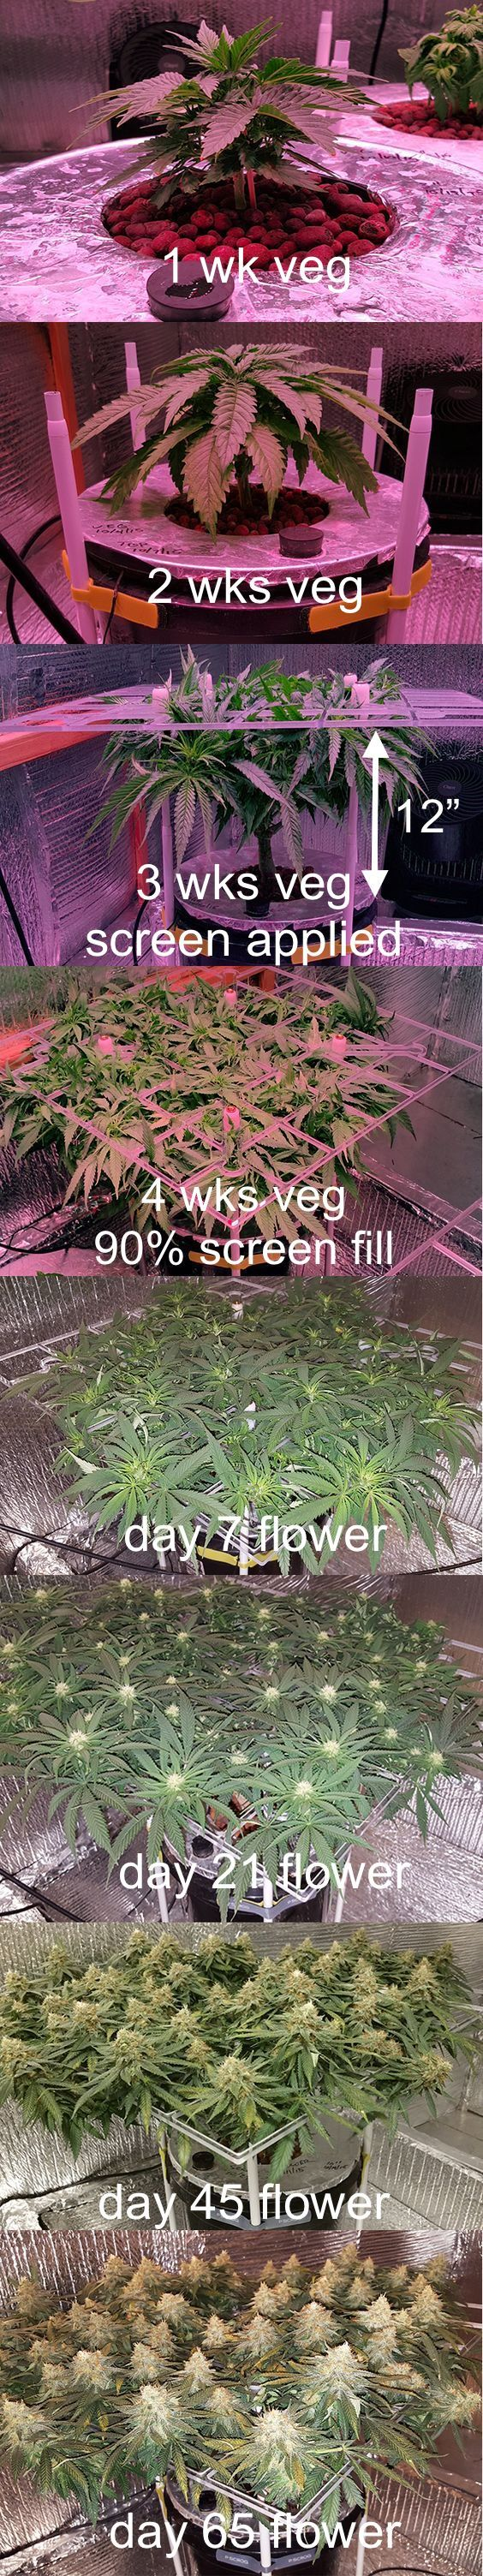 This White Widow was germinated from seed. Following rooting veg period was 32 days. Topped twice. Nothing allowed to grow through screen during veg. Switched to 12/12 lighting once screen fill was 90%. Flowers allowed to grow through screen. Flowered 65 days before harvest.